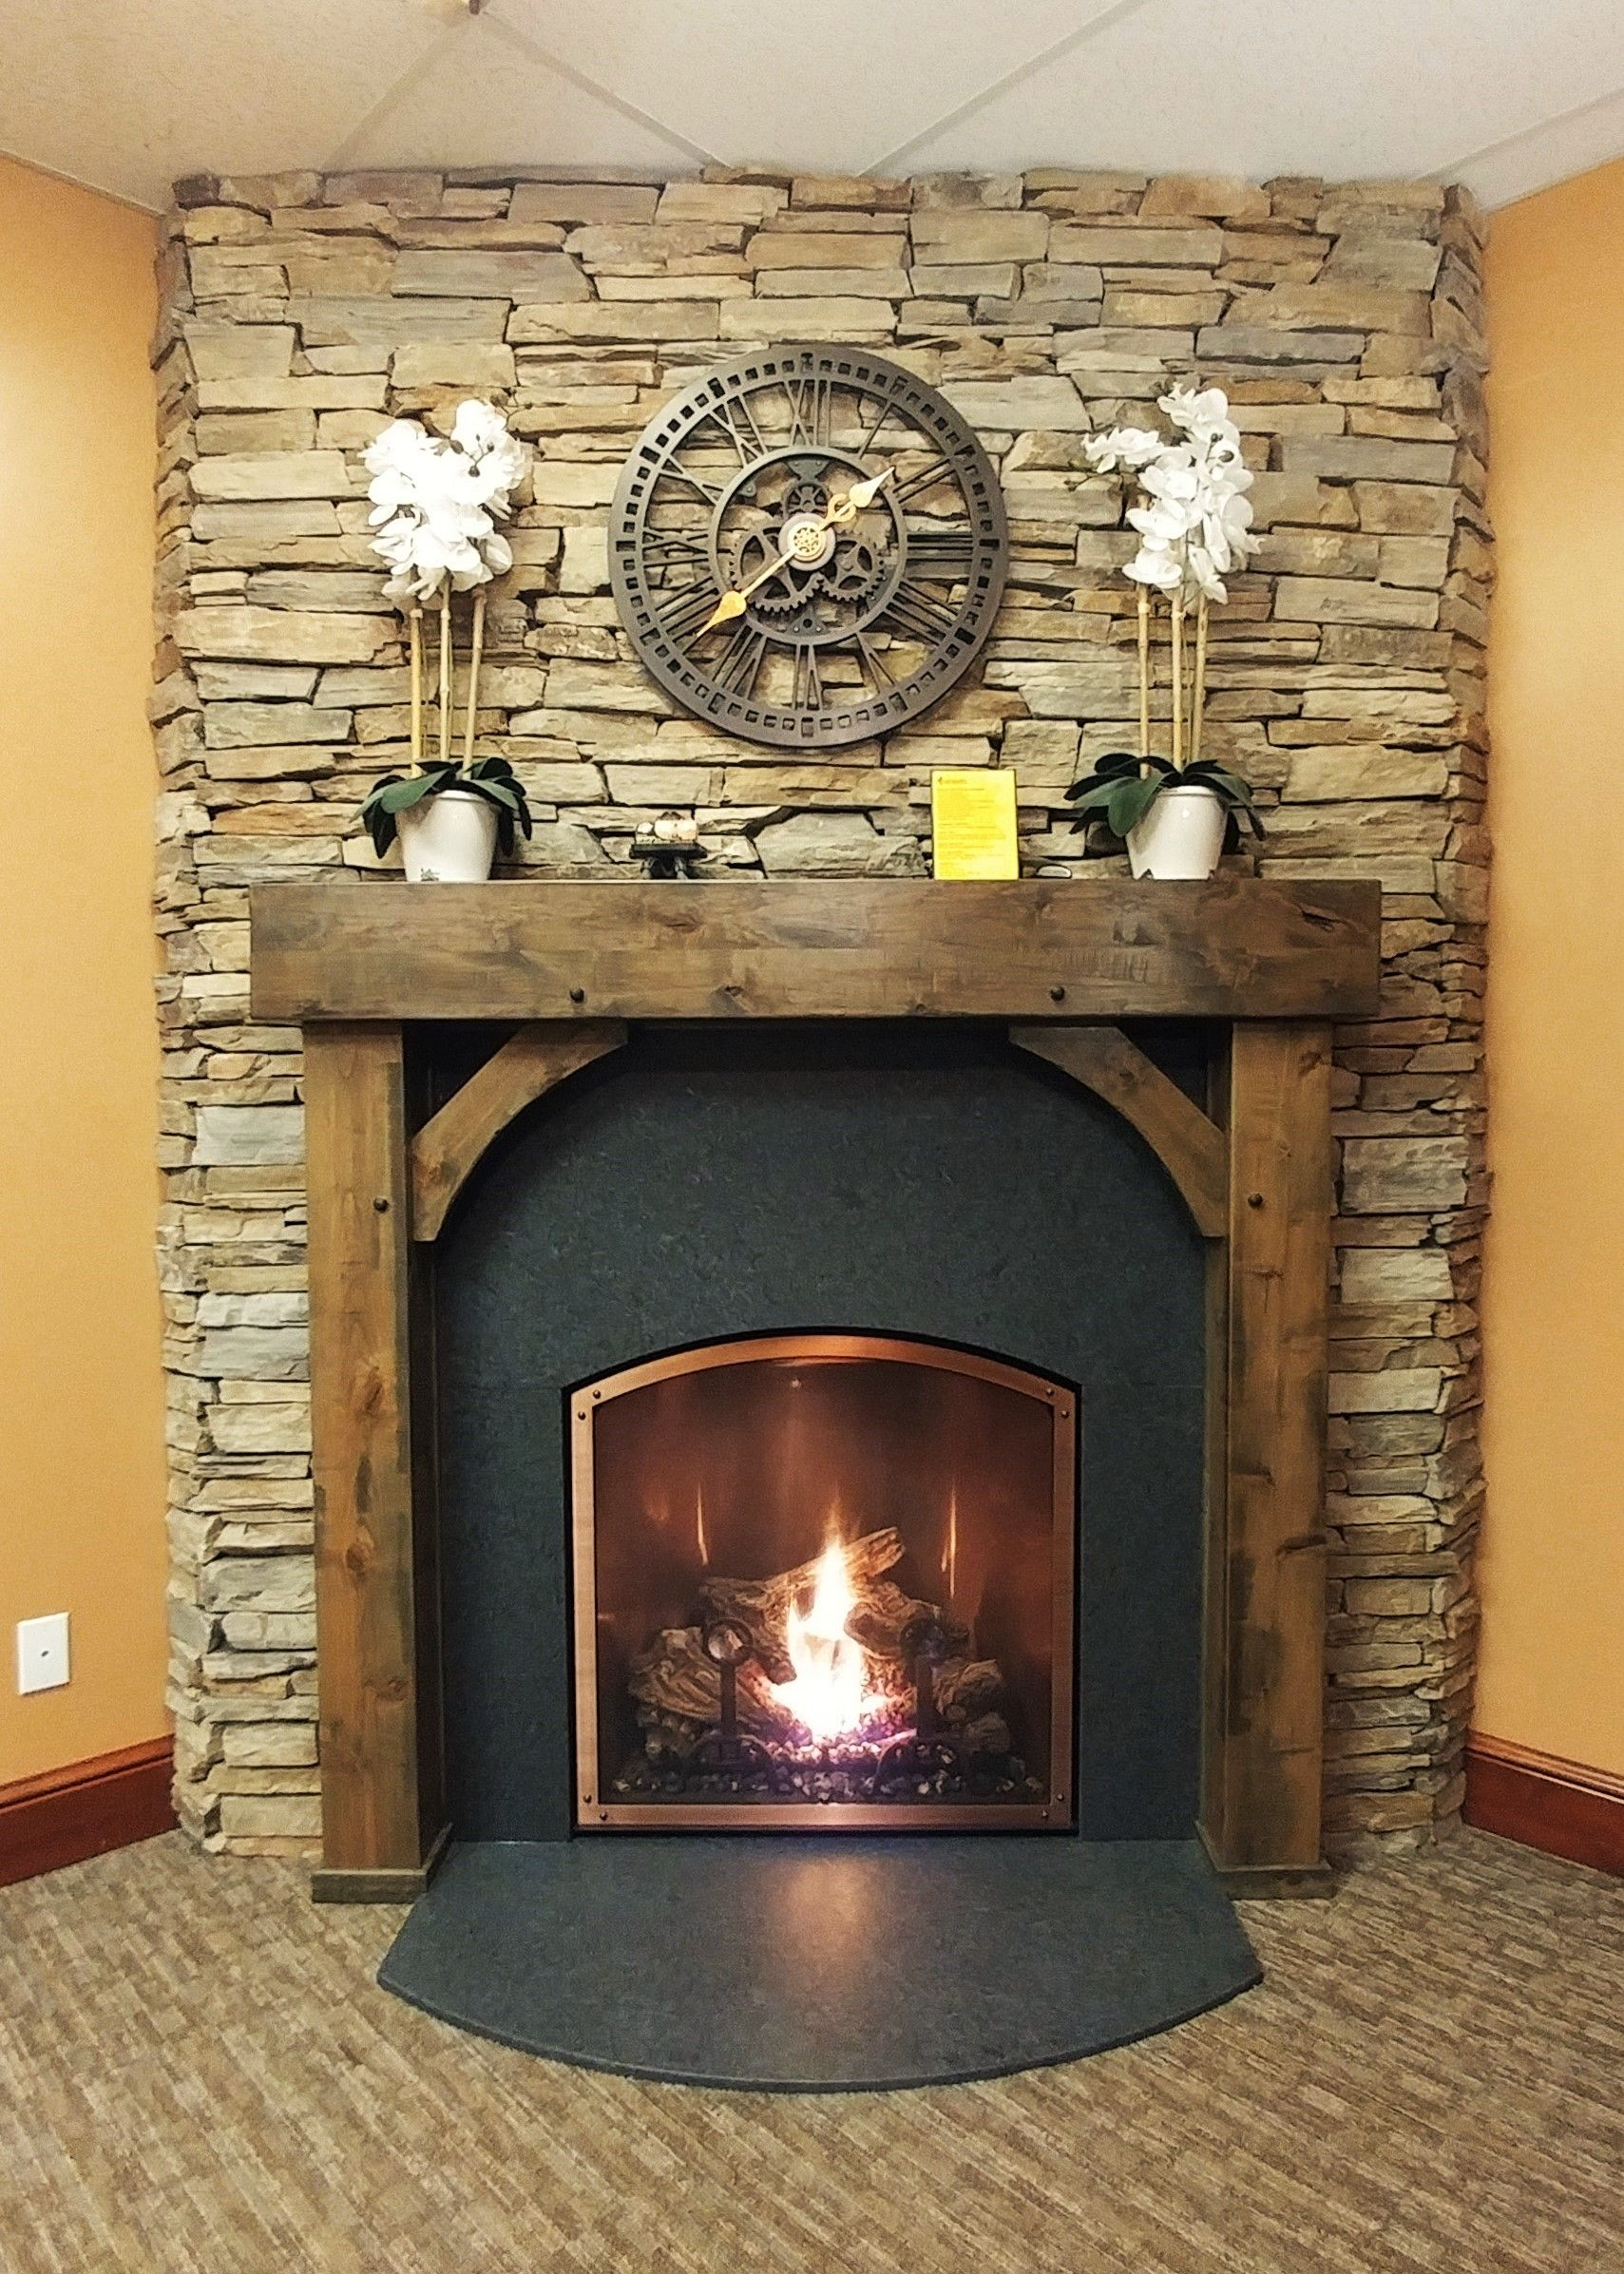 From Our Showroom Mendota Fv41 Arch Gas Fireplace With Natural